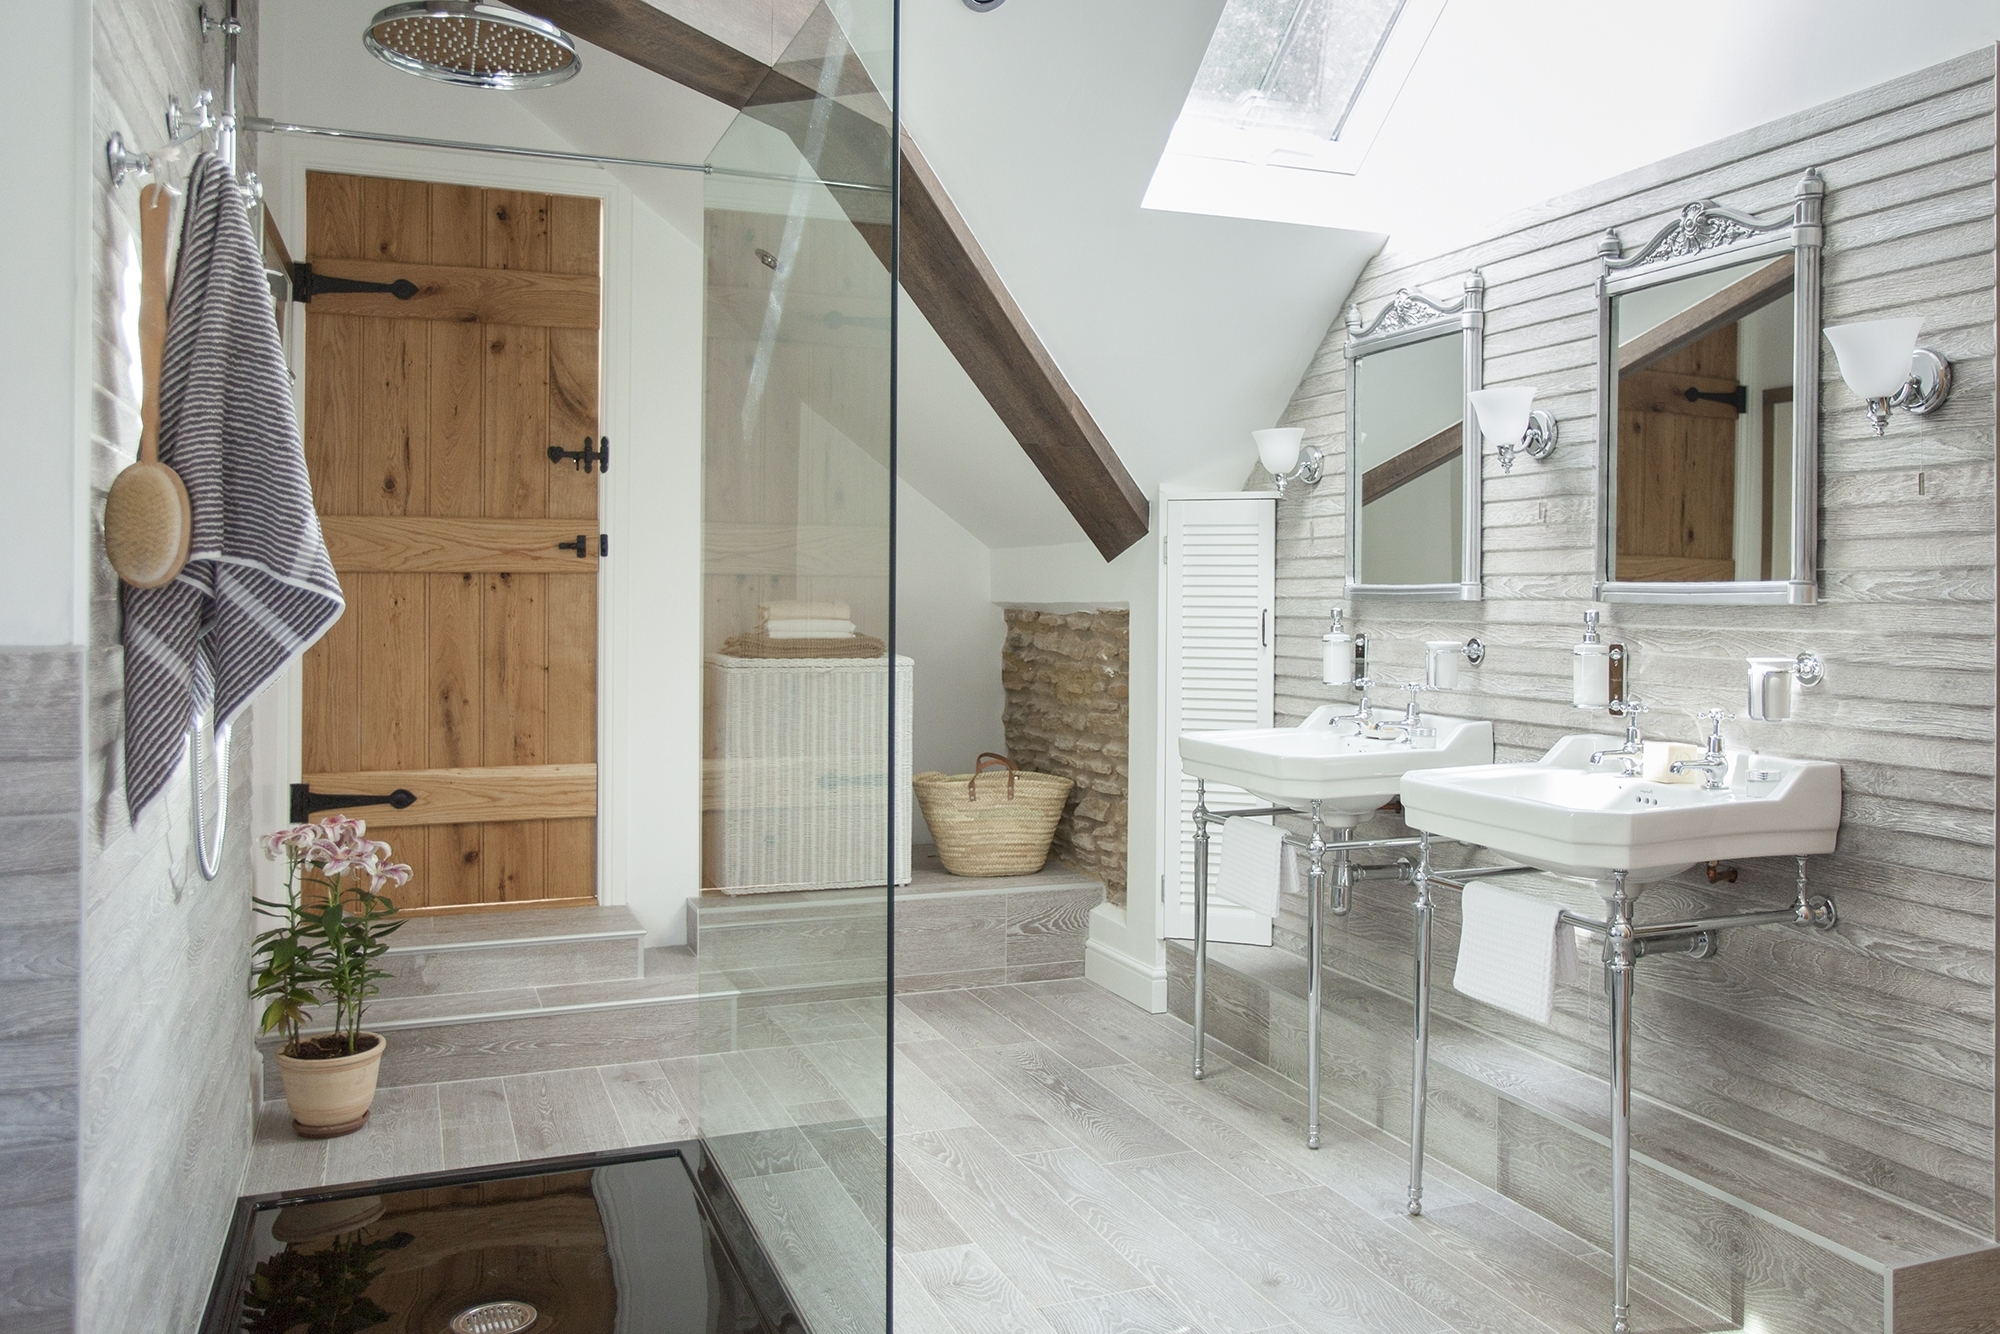 Loft Conversion Ideas Small Bathroom Loft Conversion